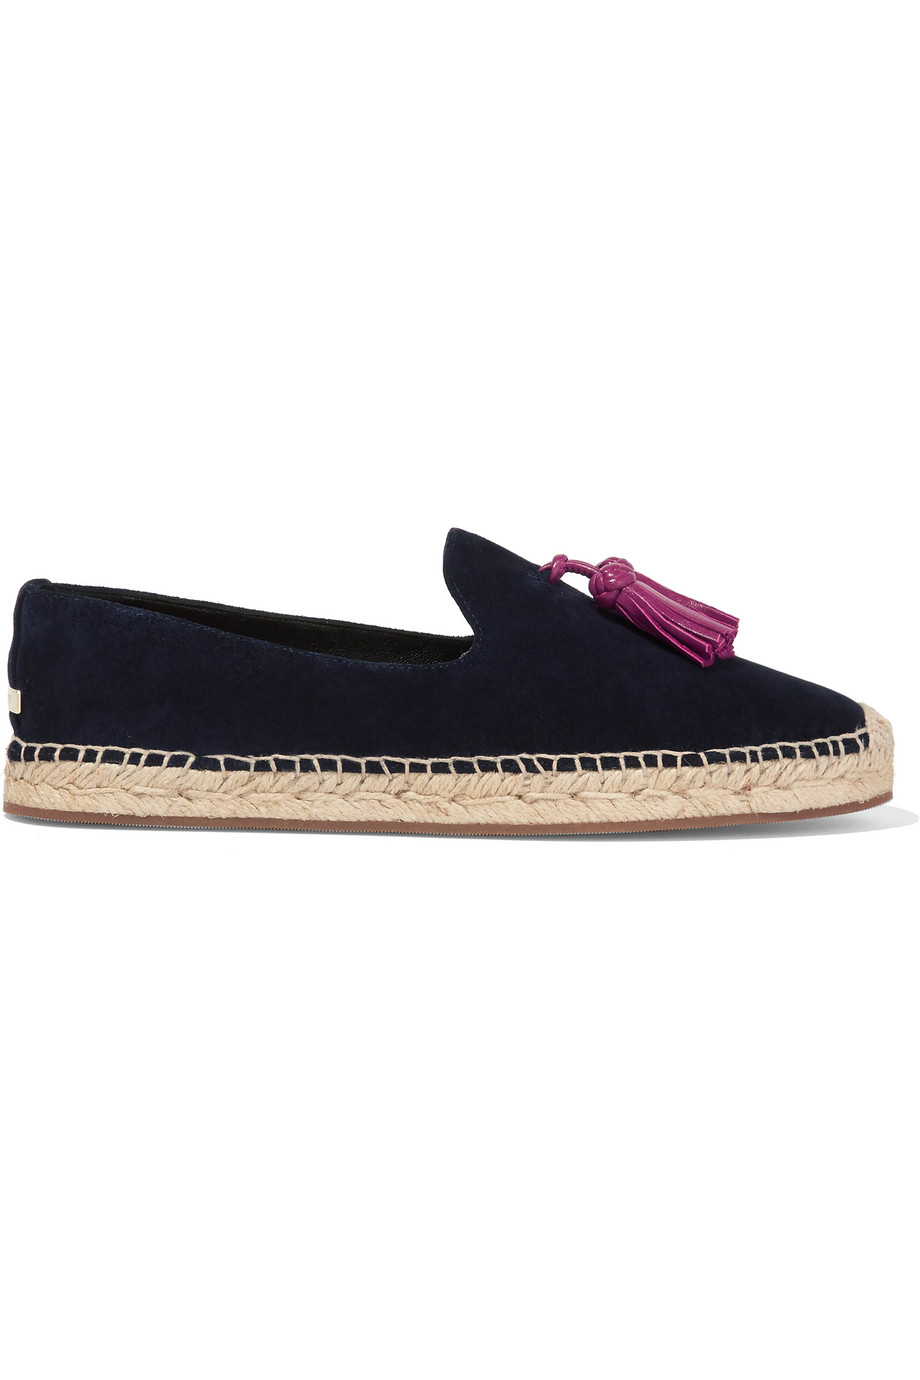 Burberry London London Tasseled Leather and Suede Espadrilles, Navy, Women's US Size: 4.5, Size: 35